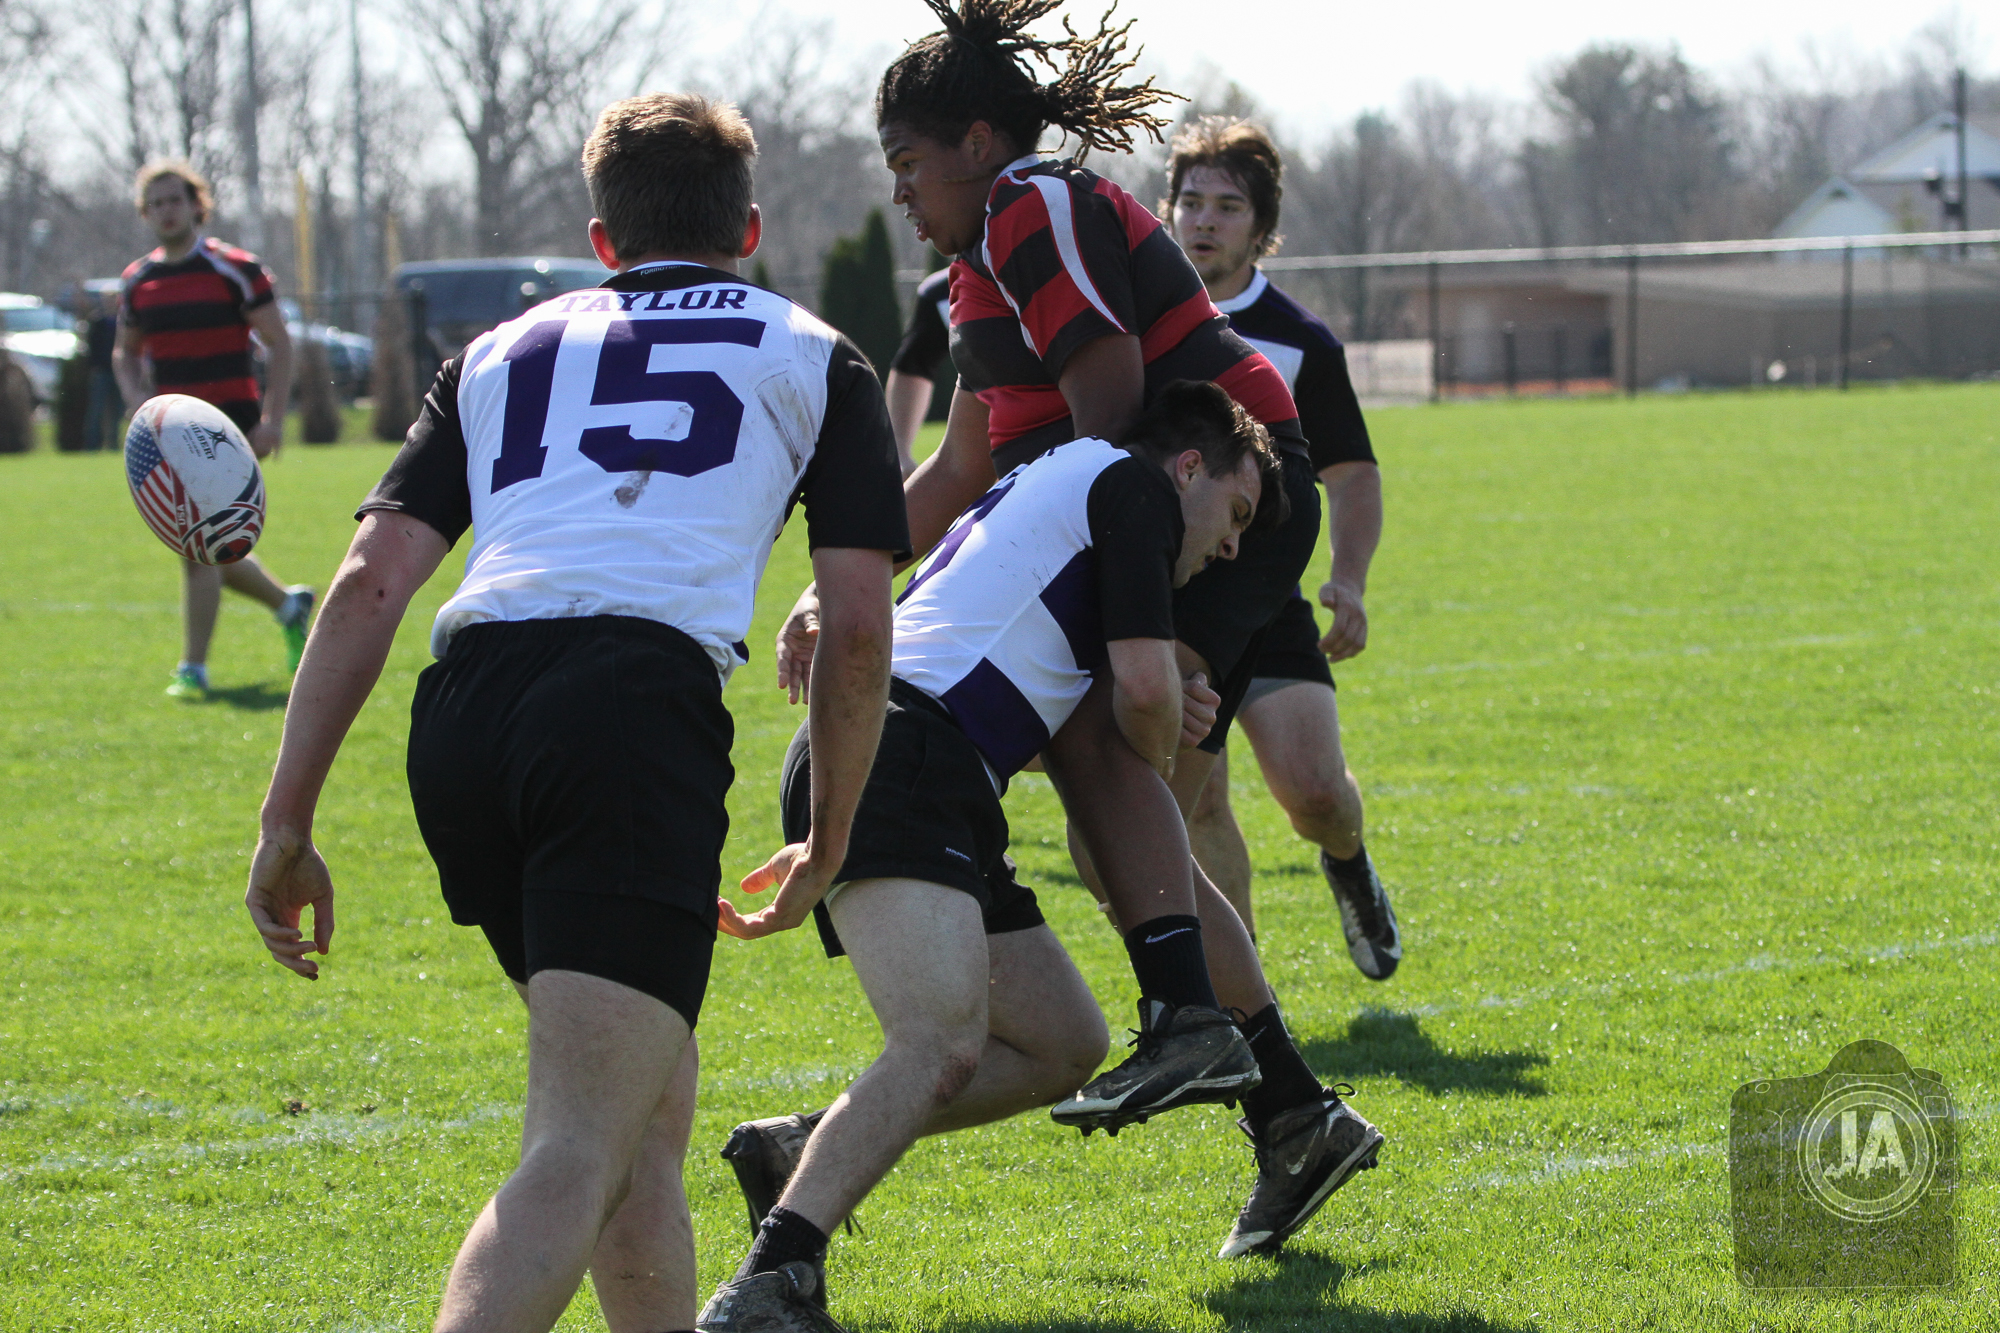 Taylor Rugby Tackle